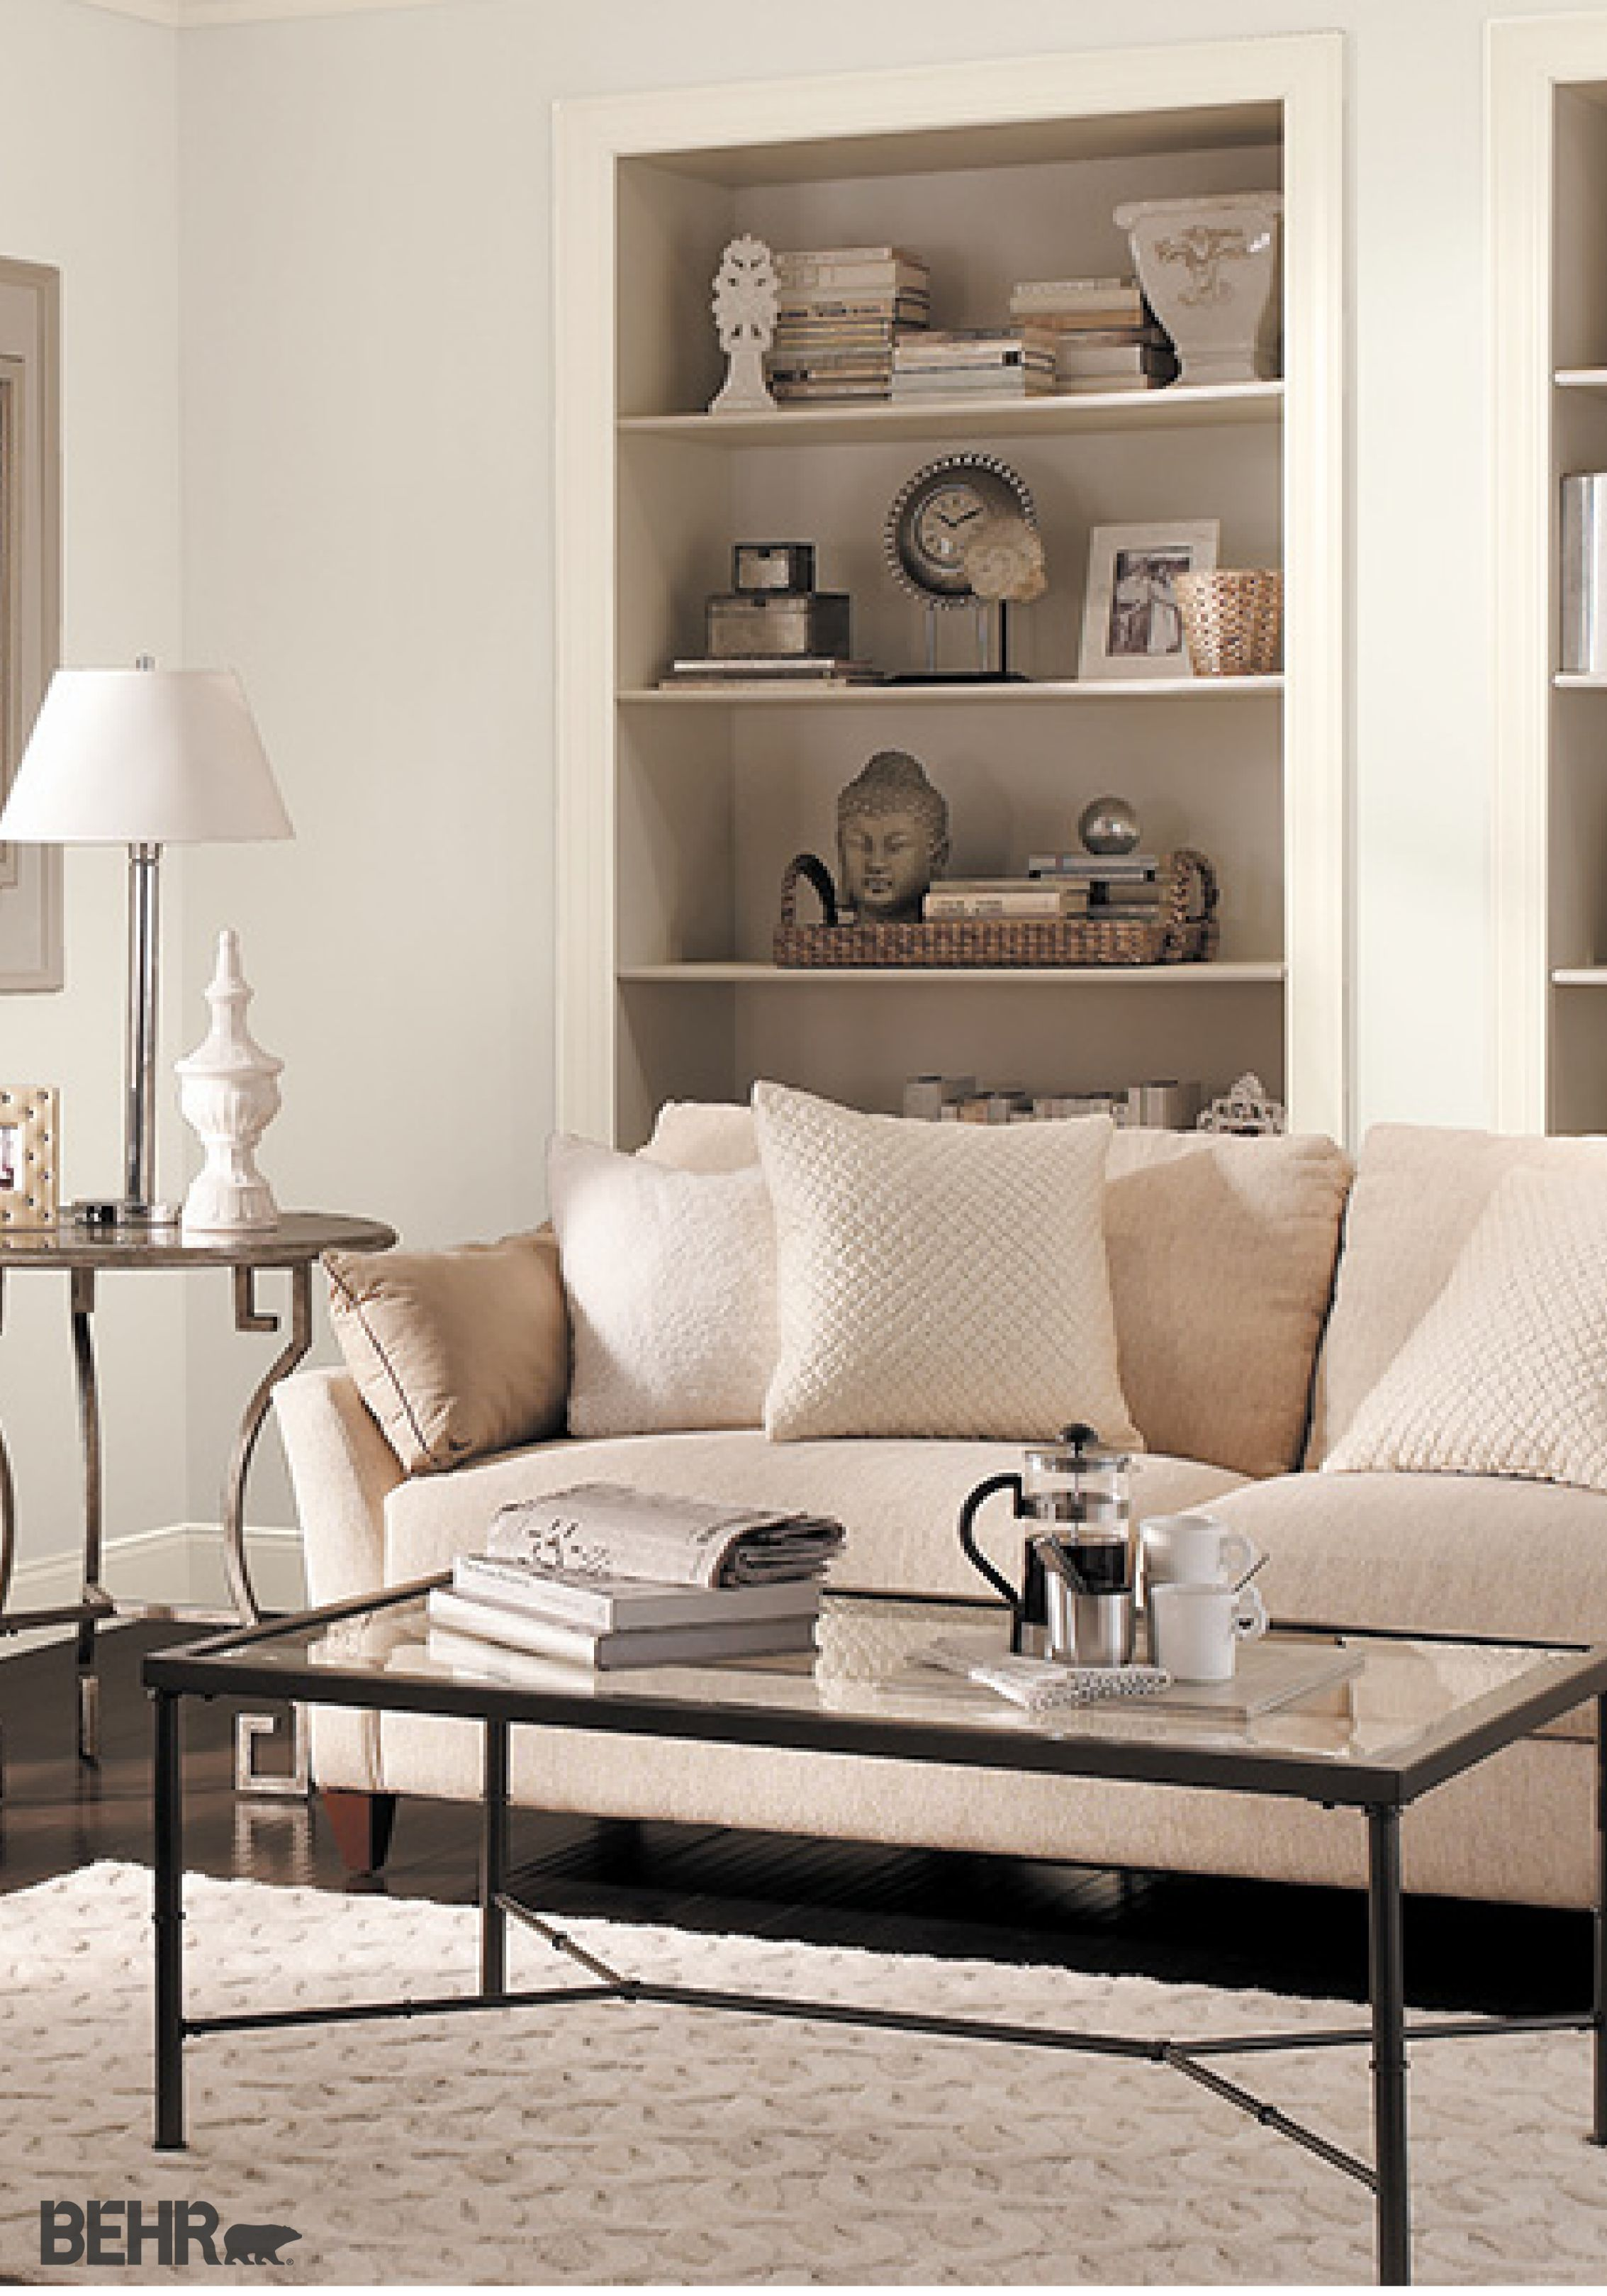 Try A Frosted Color Scheme For Your Living Room By Incorporating Shades Of Gray Into The Decor Finishing Space With Textured Accessories And Unique